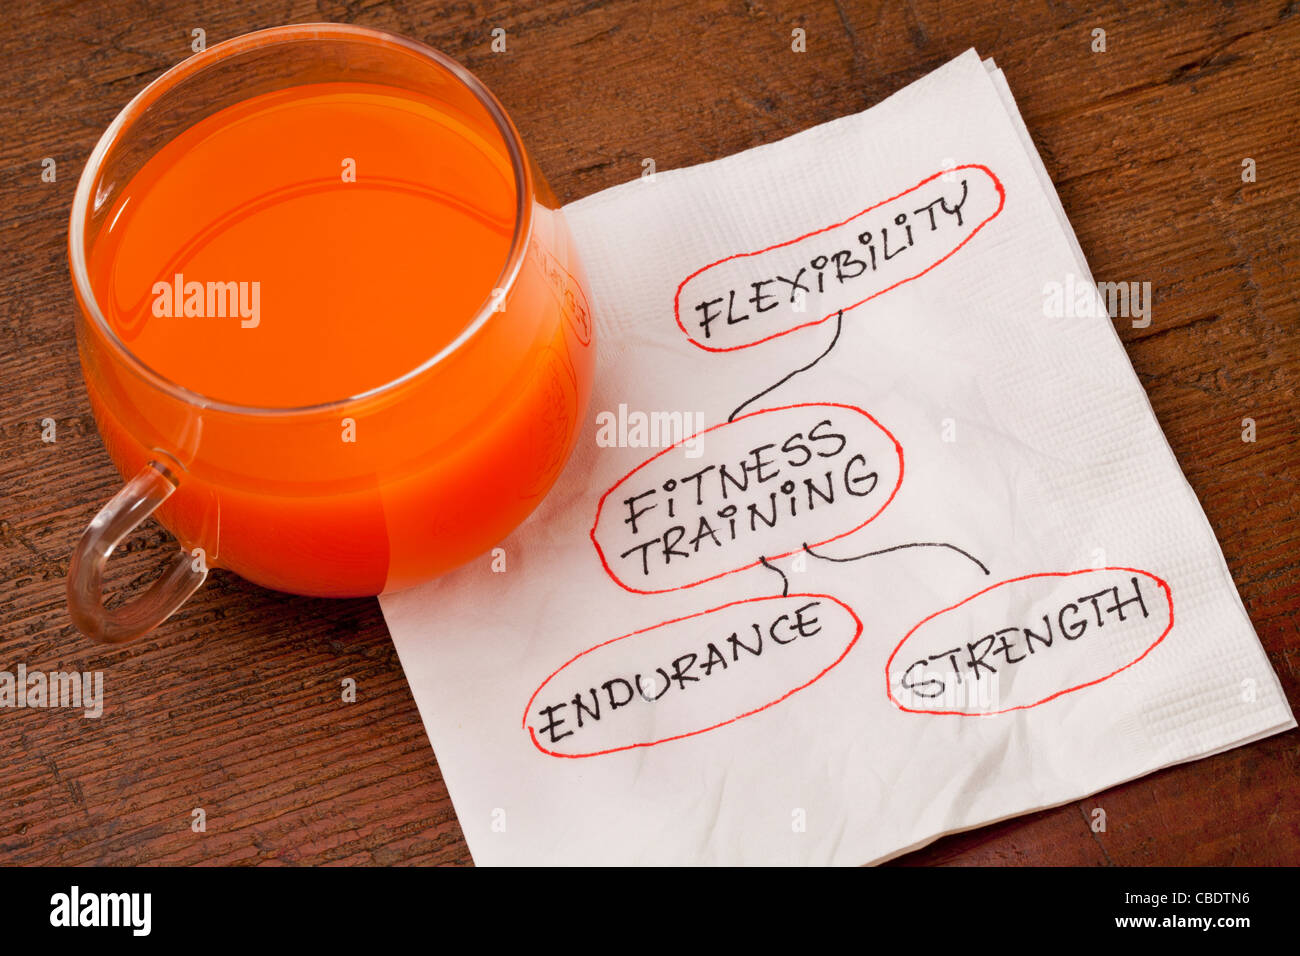 health concept - fitness training - napkin doodle with a glass cup of carrot juice - Stock Image